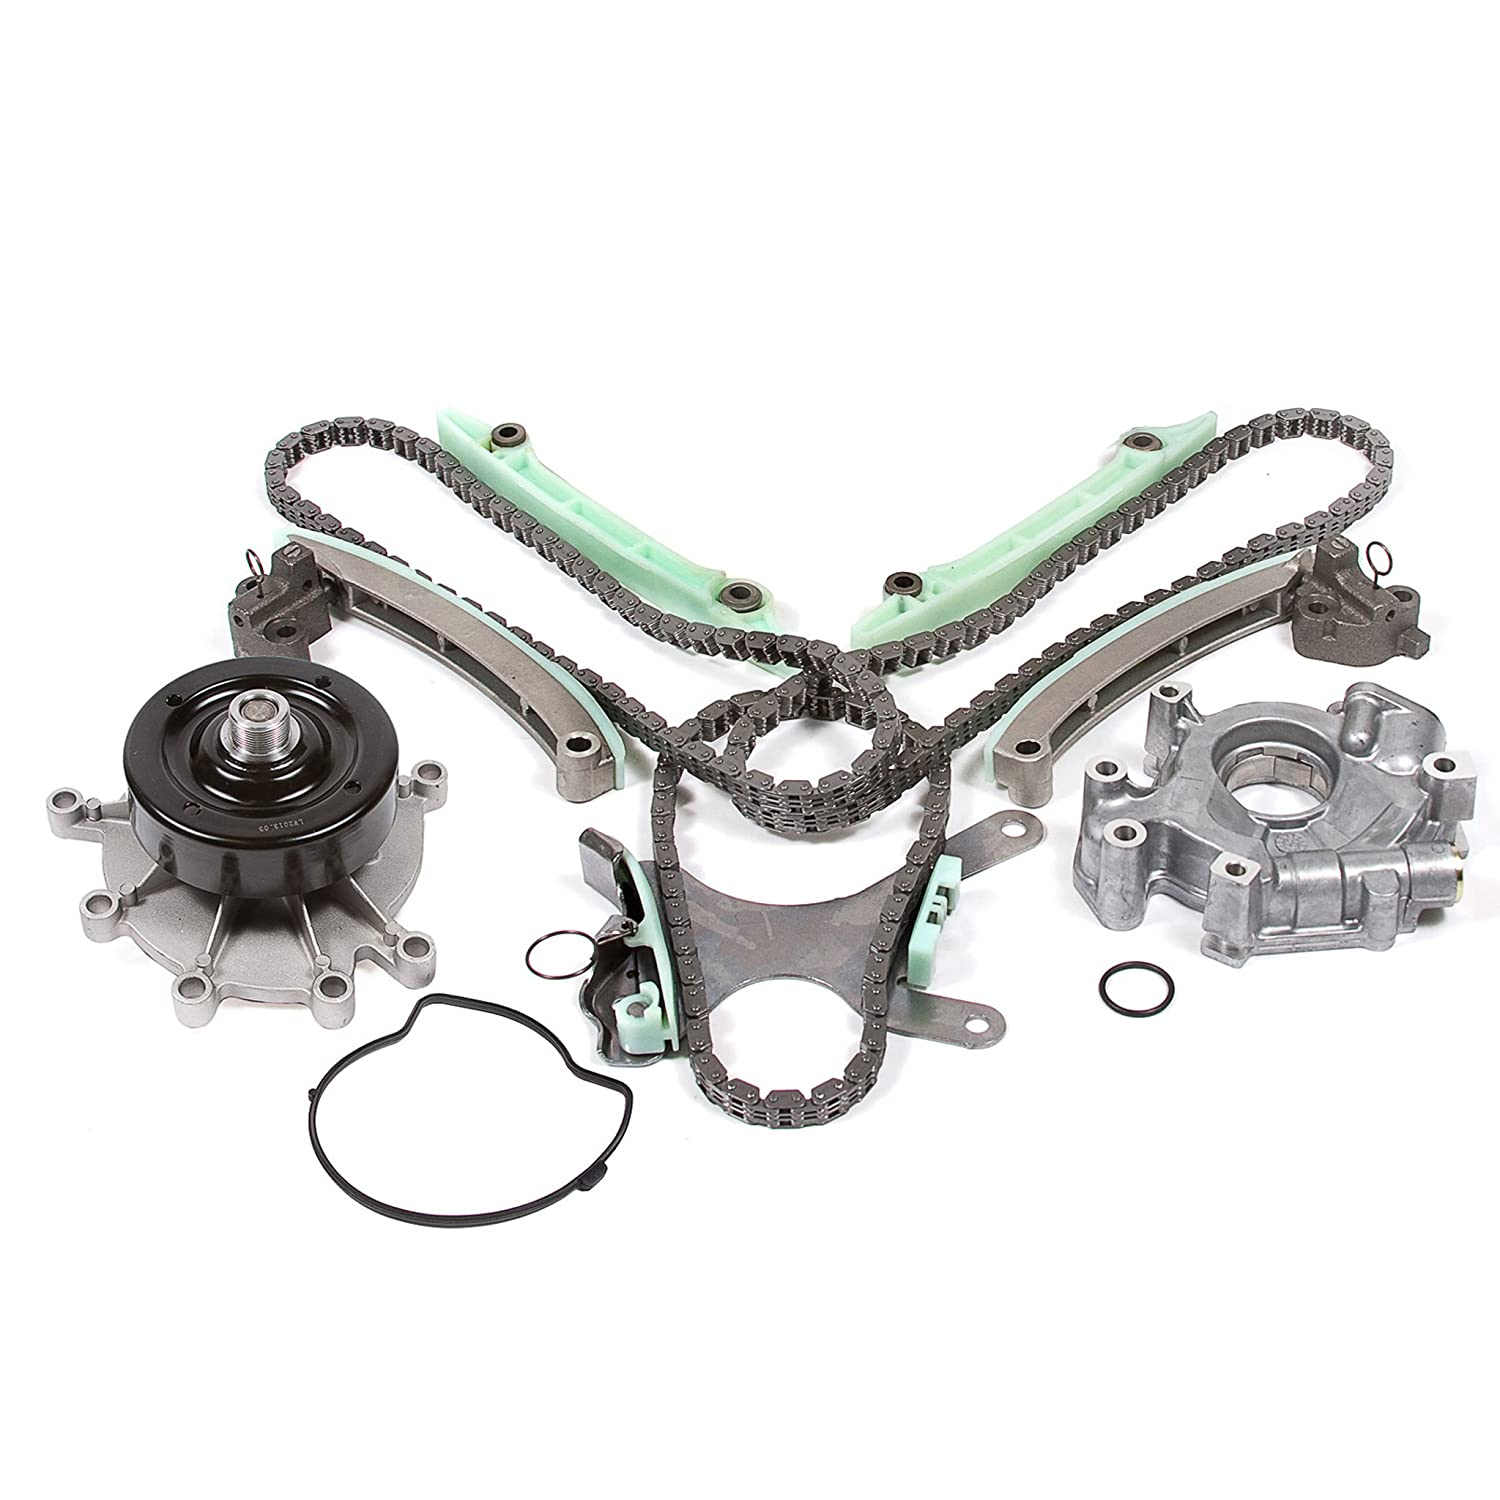 Evergreen TK5047NGWOP Fits 03-08 Mitusbishi Jeep Dodge 4.7L Timing Chain Kit Oil Pump Water Pump without Gears NGC Cam Gear